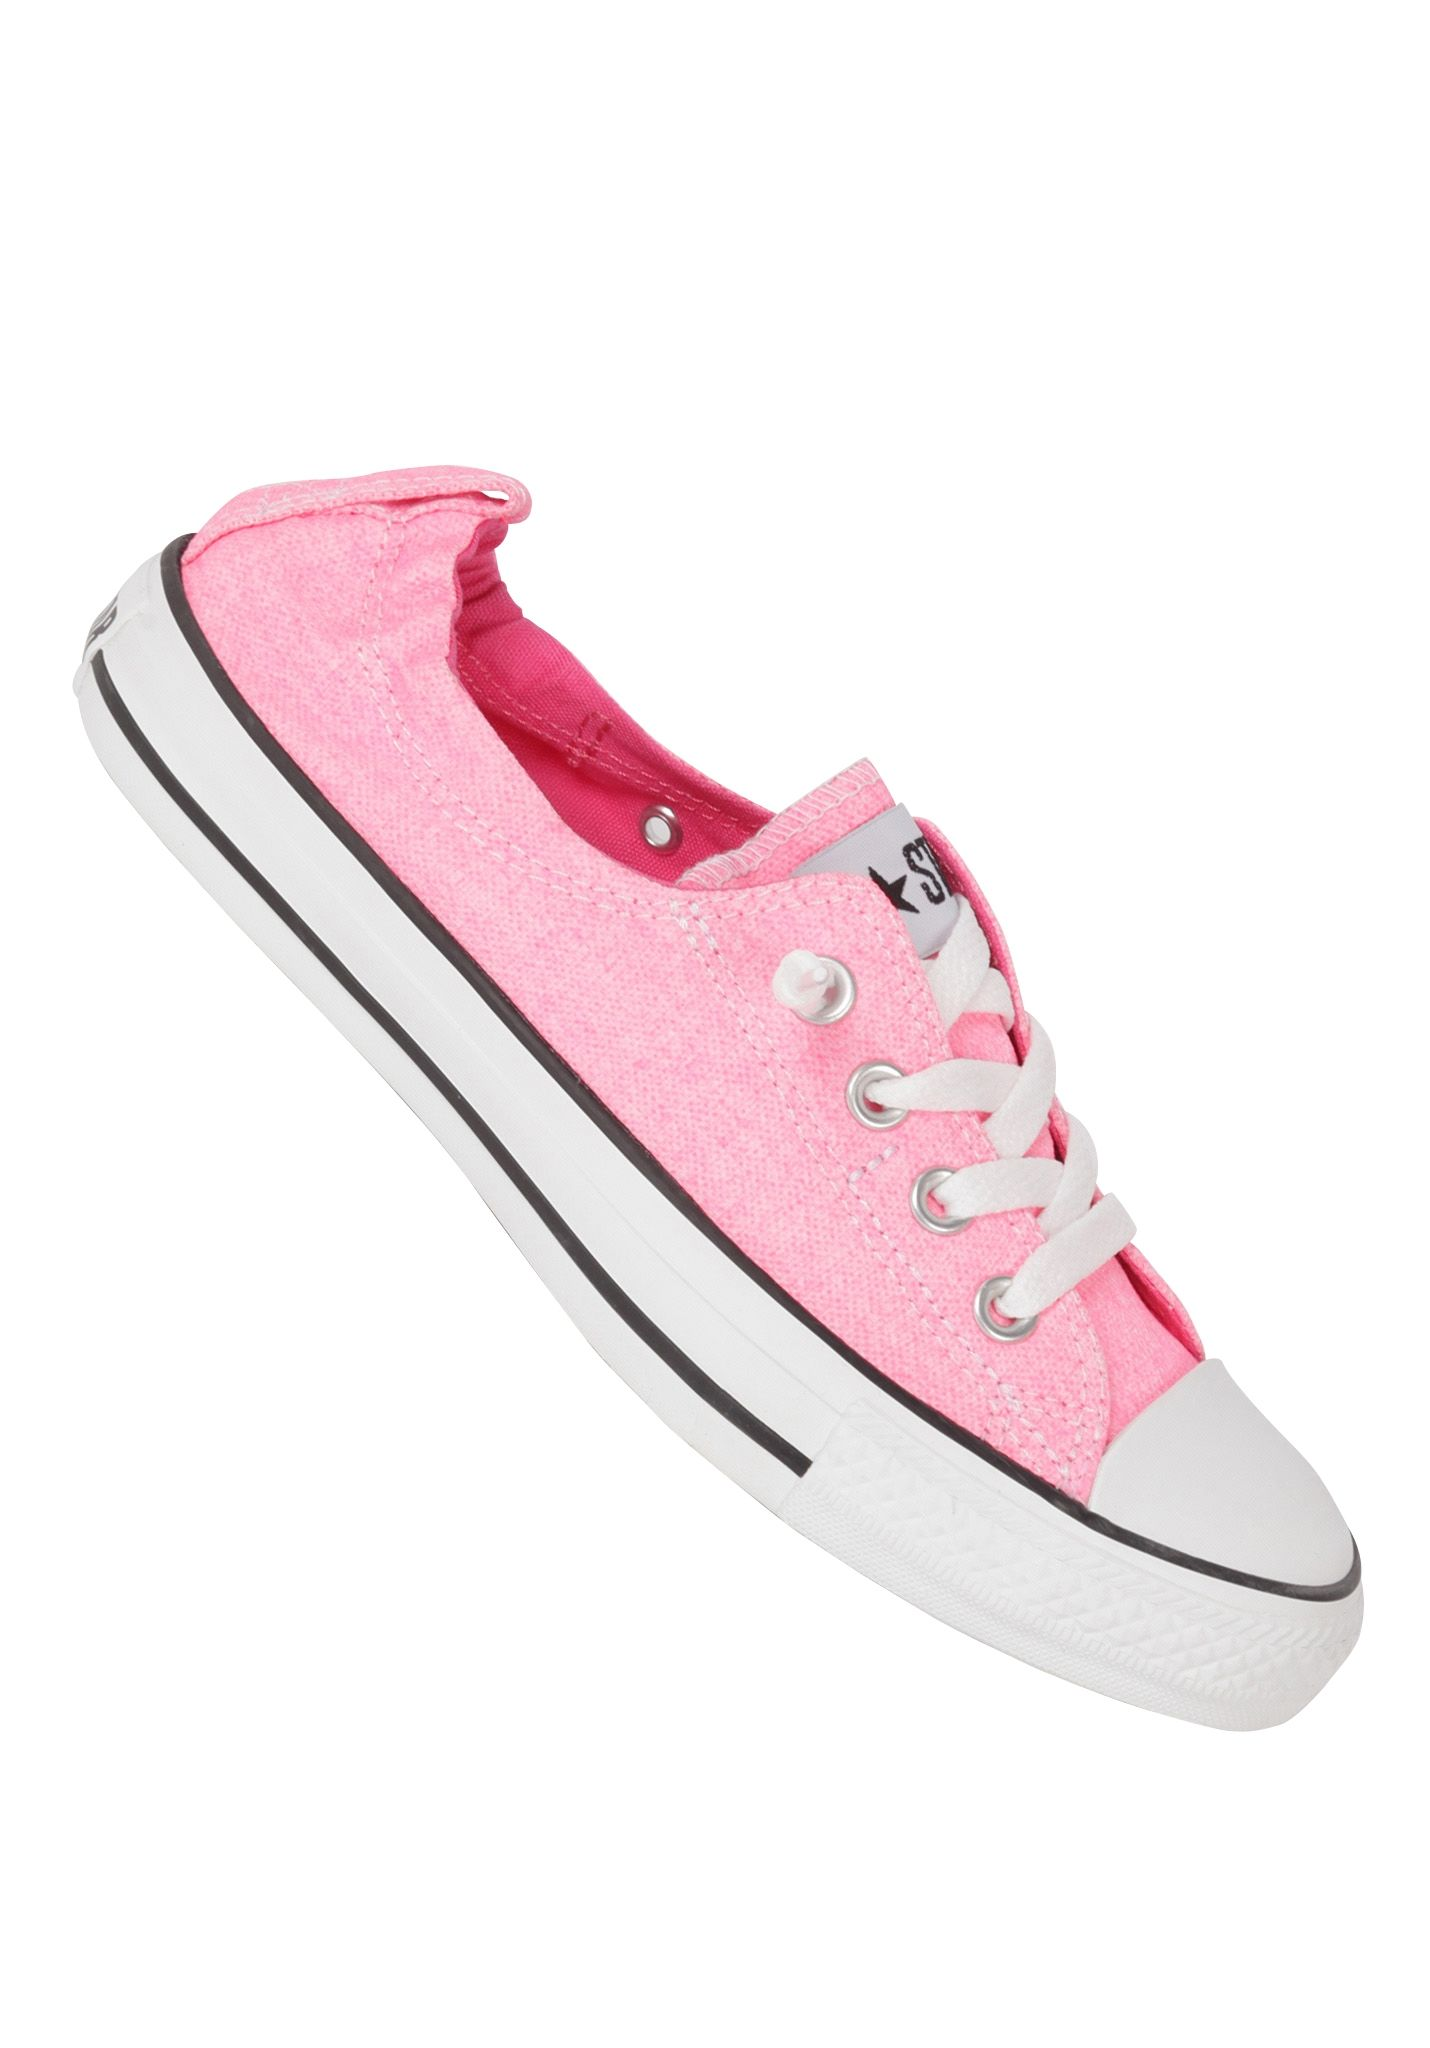 Converse Chuck Taylor All Star Shoreline Ox - Sneakers for Women - Pink -  Planet Sports b254dc29d